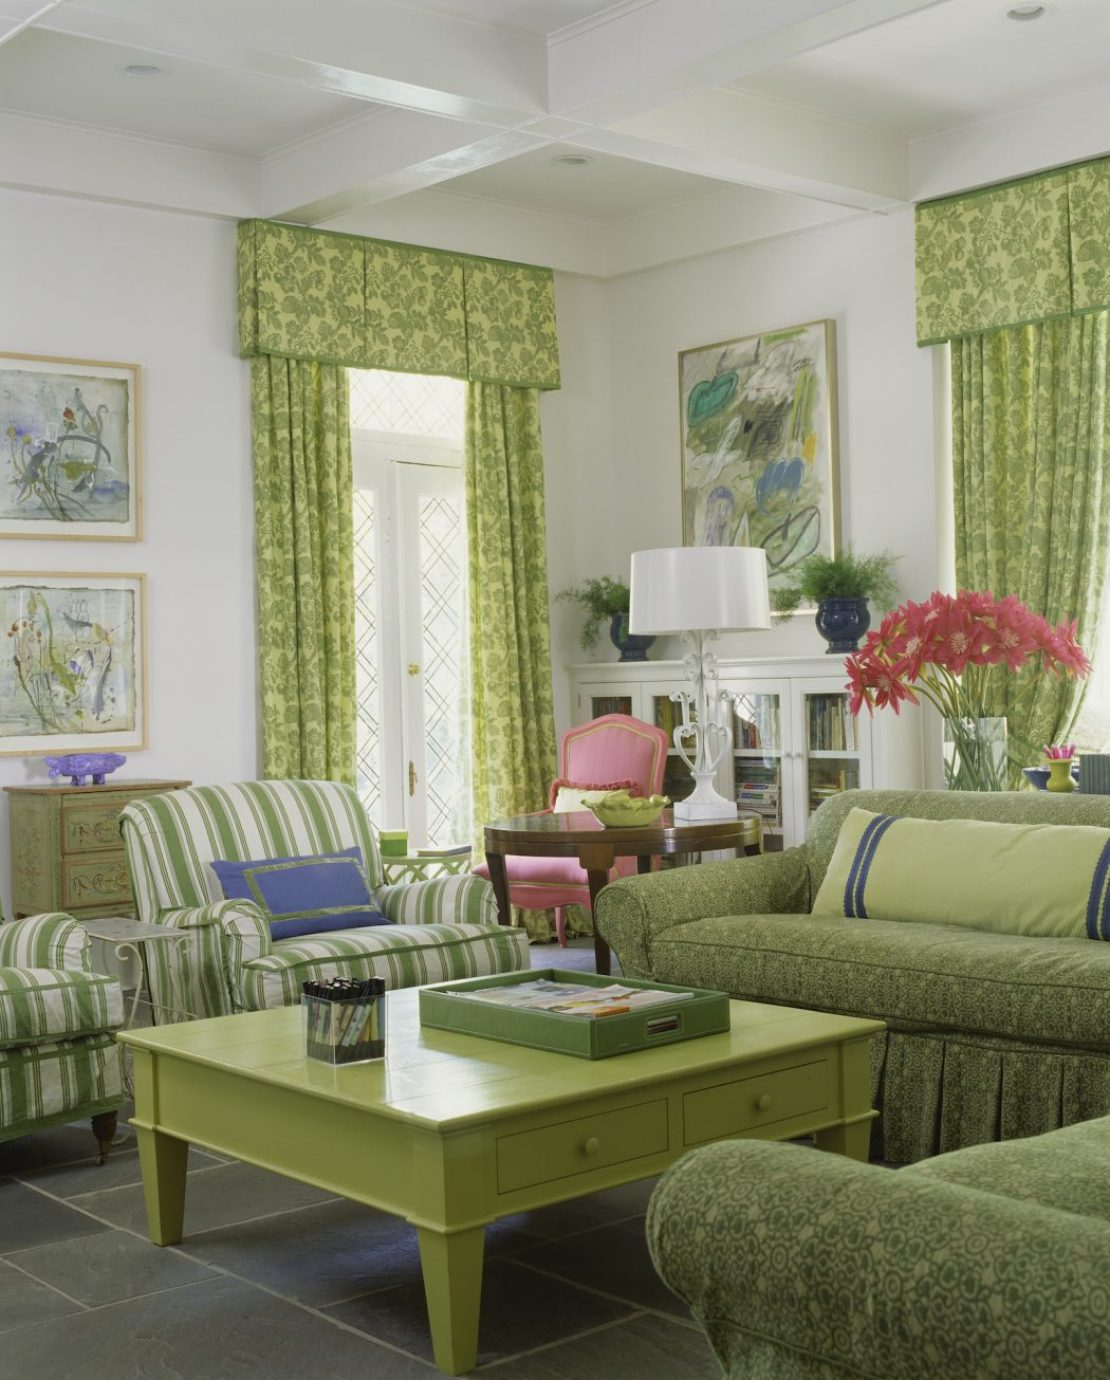 home-trends-curtain-valance-1490208381 5 Outdated Home Decor Trends That Are Coming Again in 2018